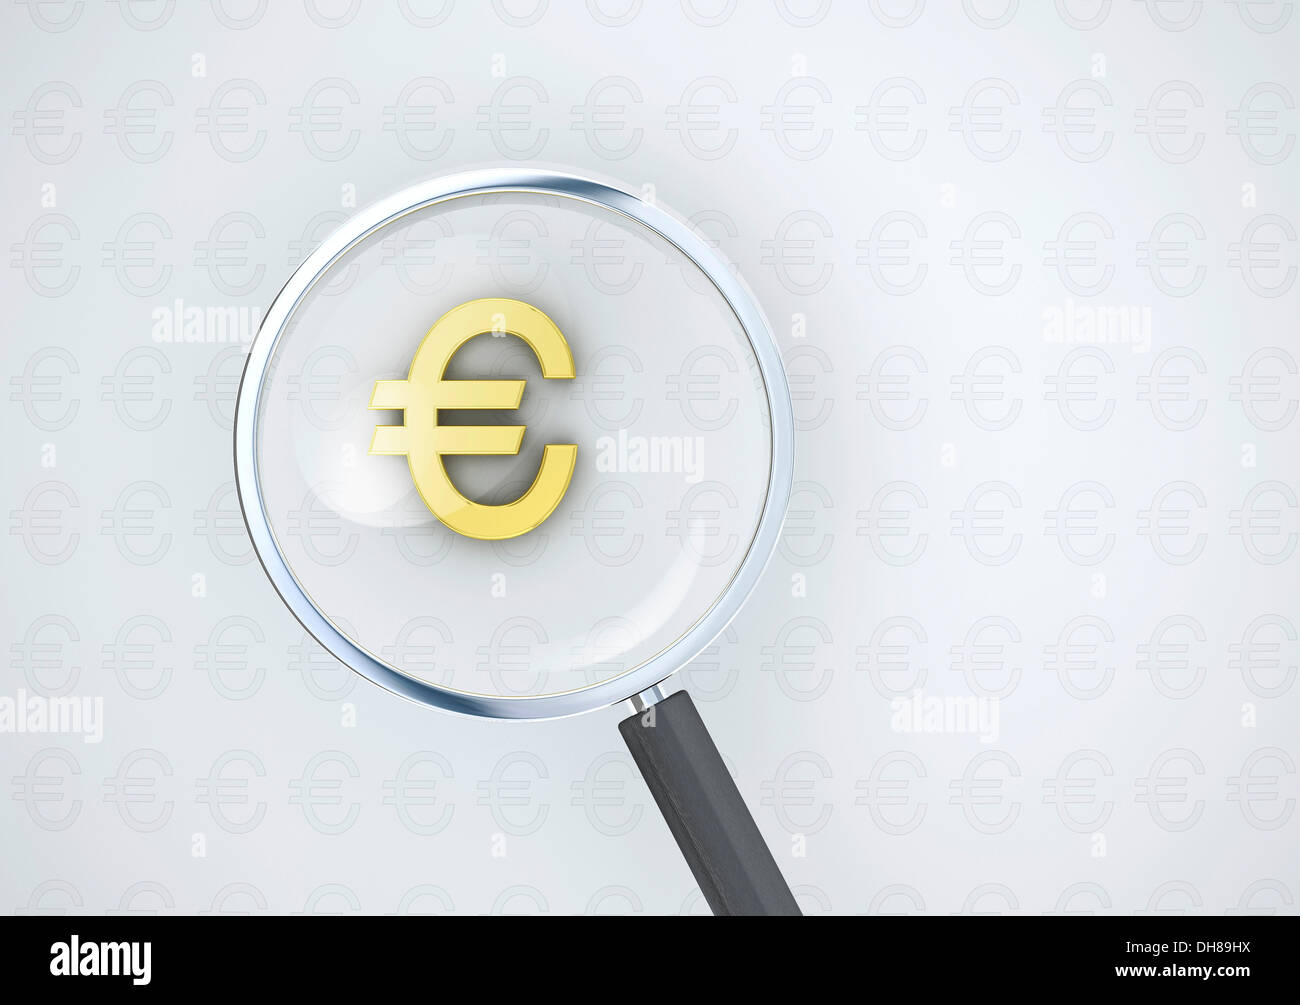 Magnifying glass with a golden euro symbol conceptual image for magnifying glass with a golden euro symbol conceptual image for currency dominance or exchange rates biocorpaavc